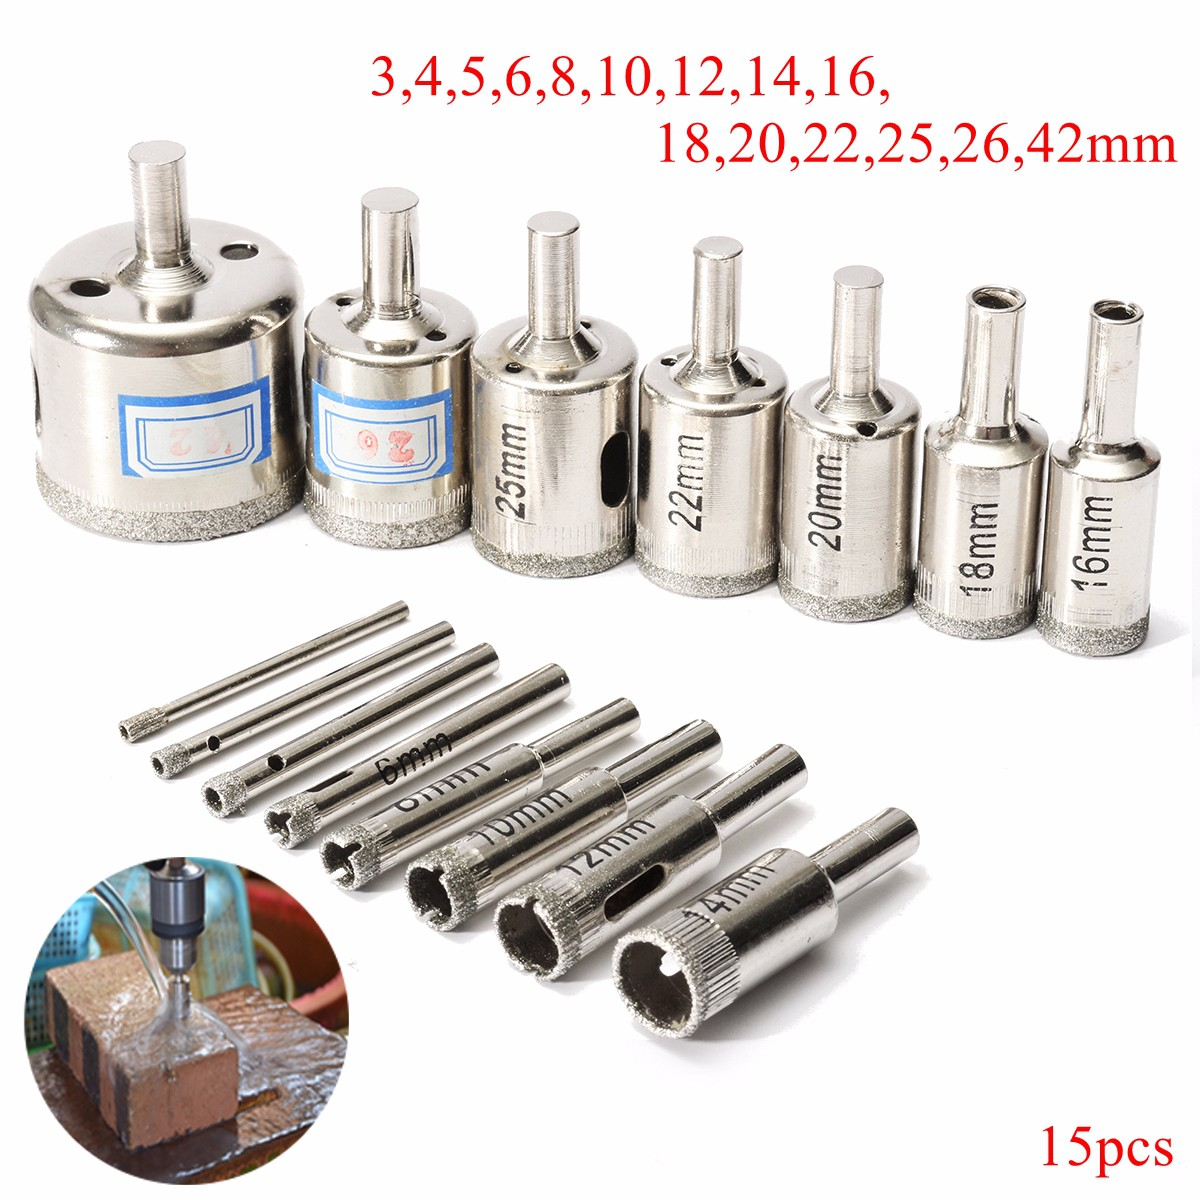 цена на 15pcs Hole Saw Set Marble Core Drill Bits 3mm-42mm Diamond Cutter Tool for Glass Marble Tile Ceramic Glass Cutting Drilling